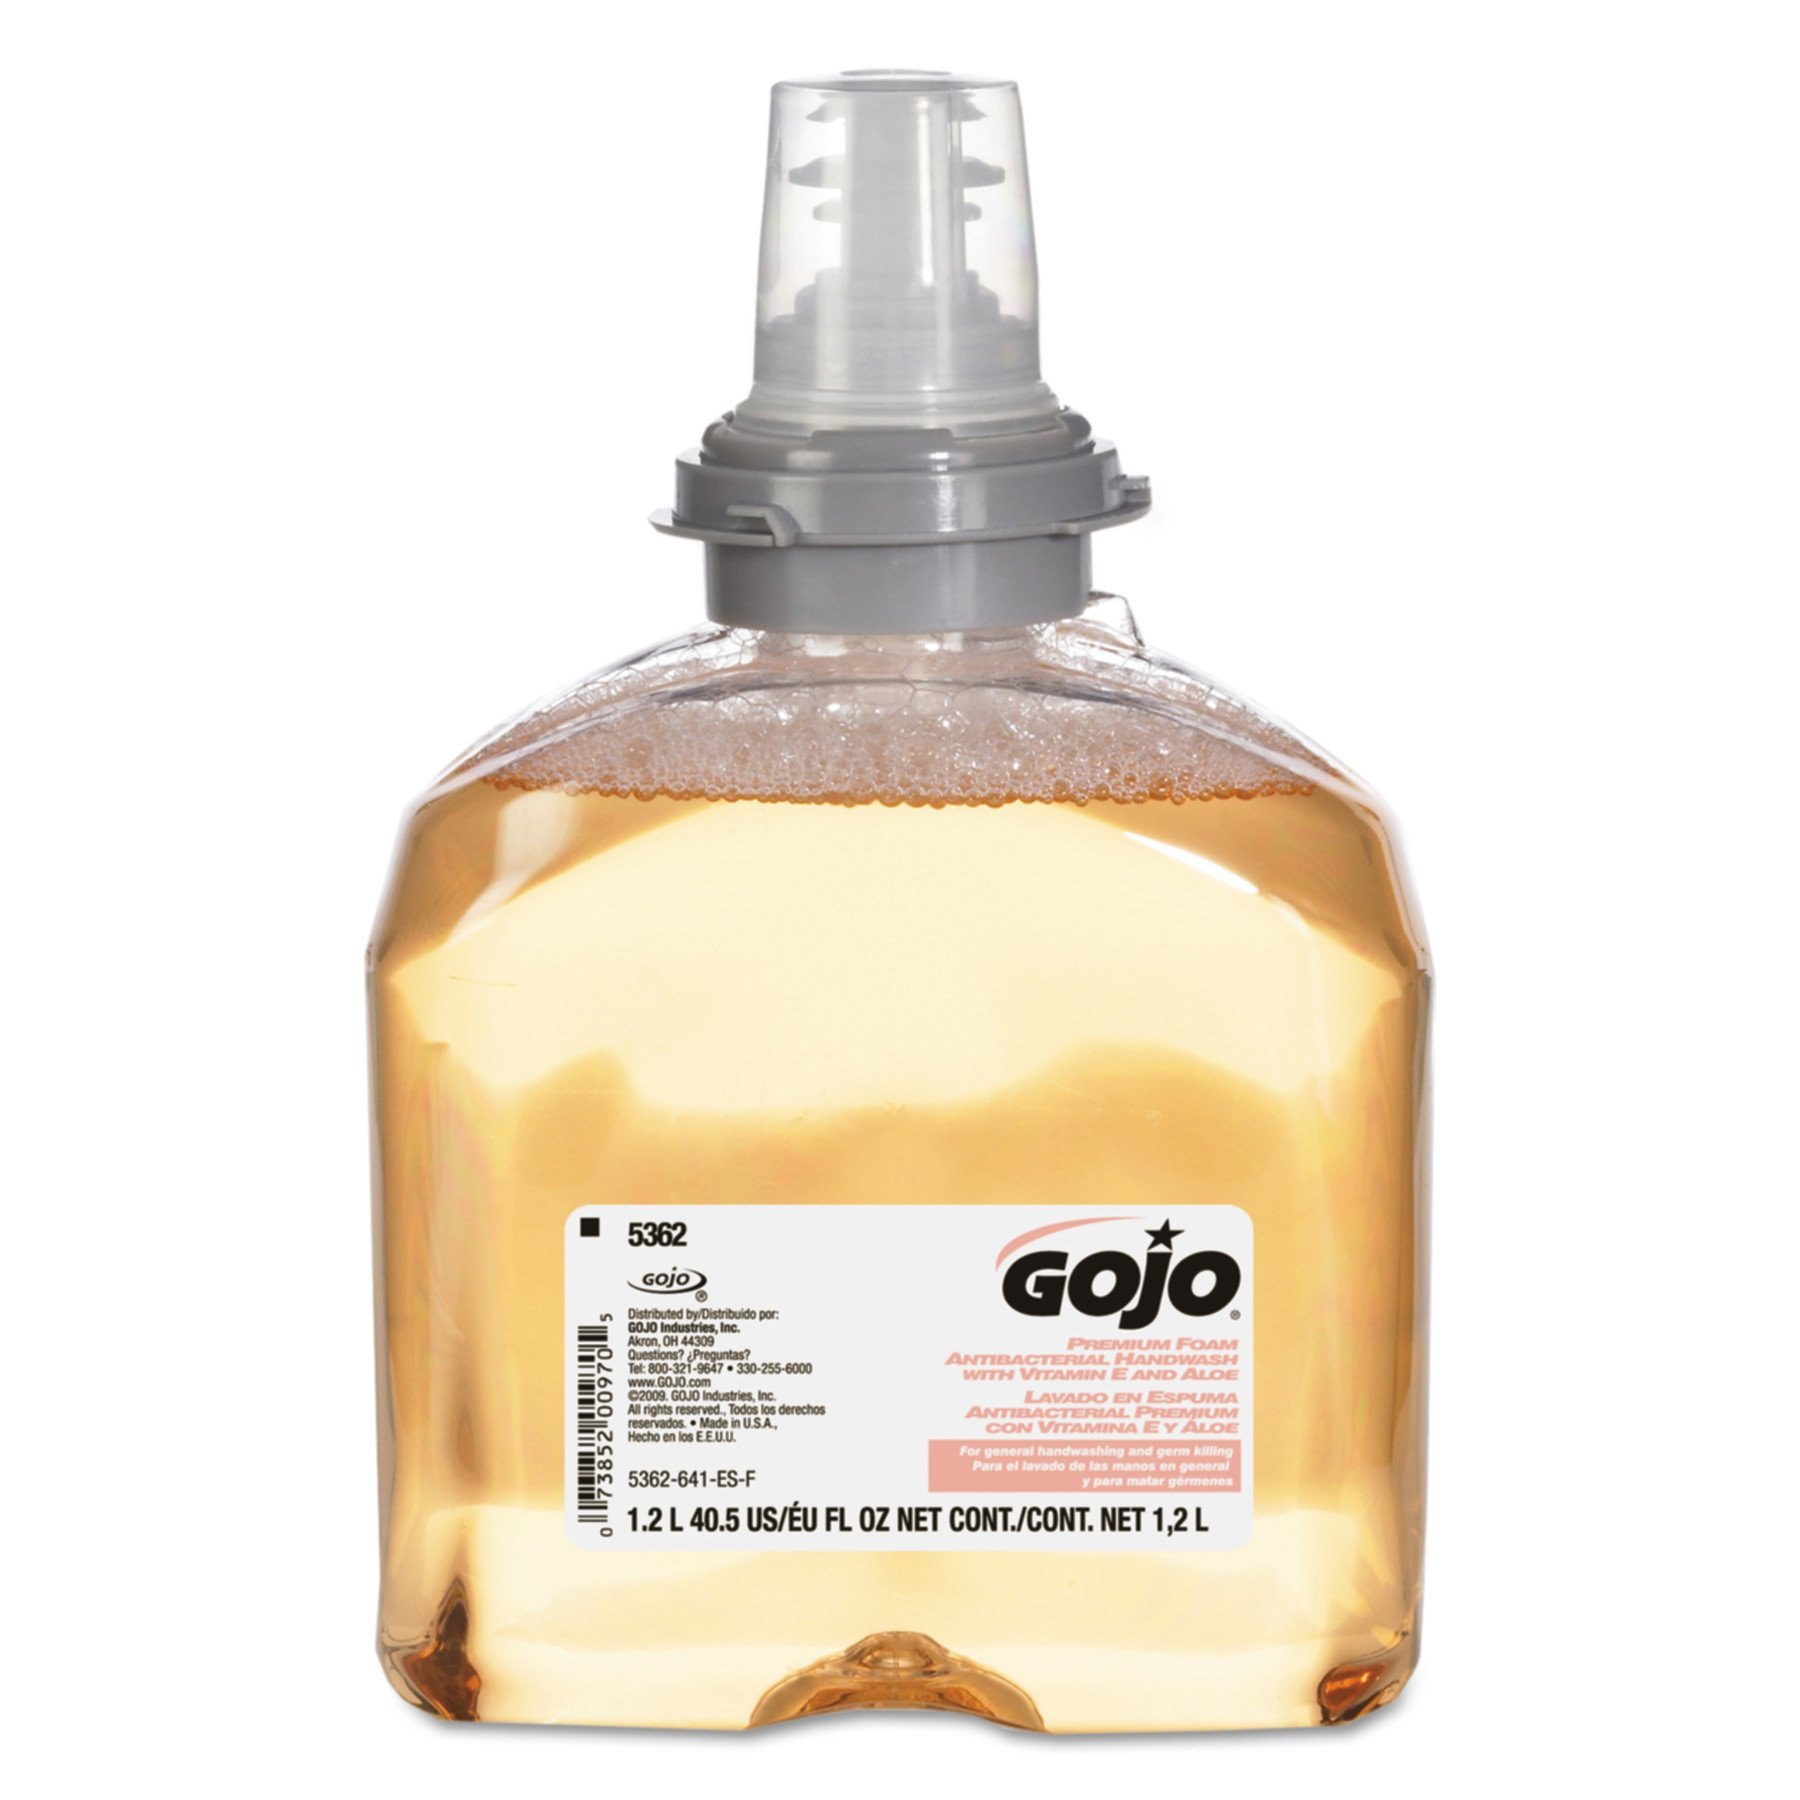 GOJO TFX Premium Foam Antibacterial Handwash, Fresh Fruit Scent, 1200 mL Foam Soap Refills